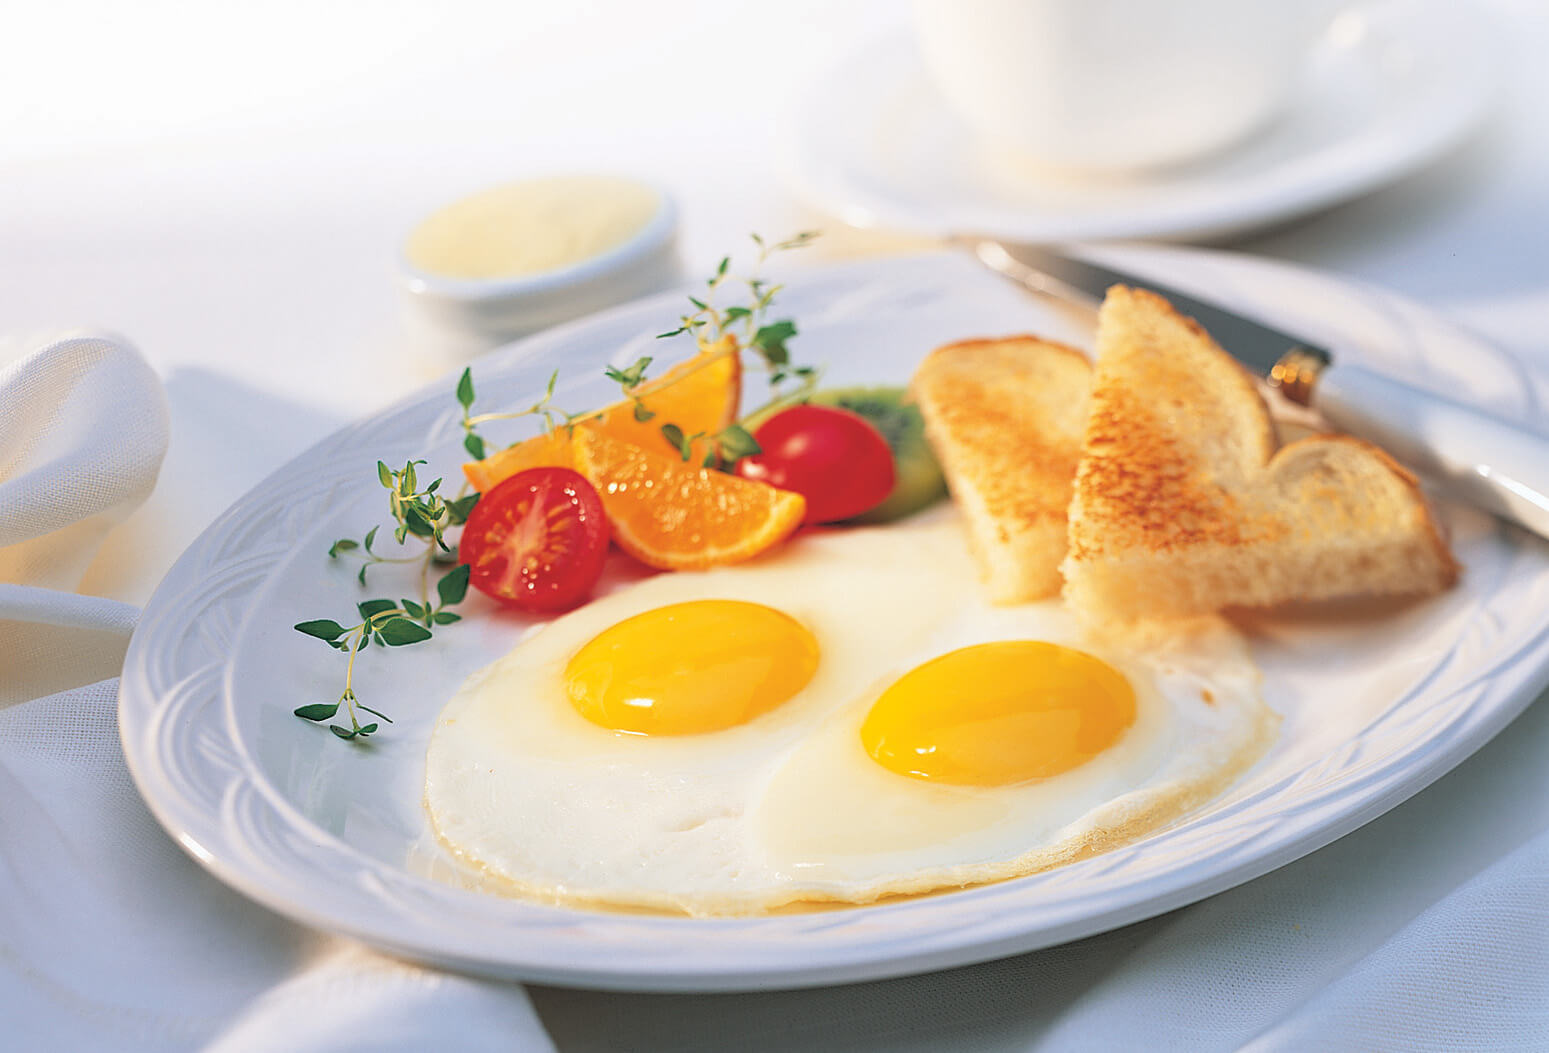 Have fulfilling breakfasts